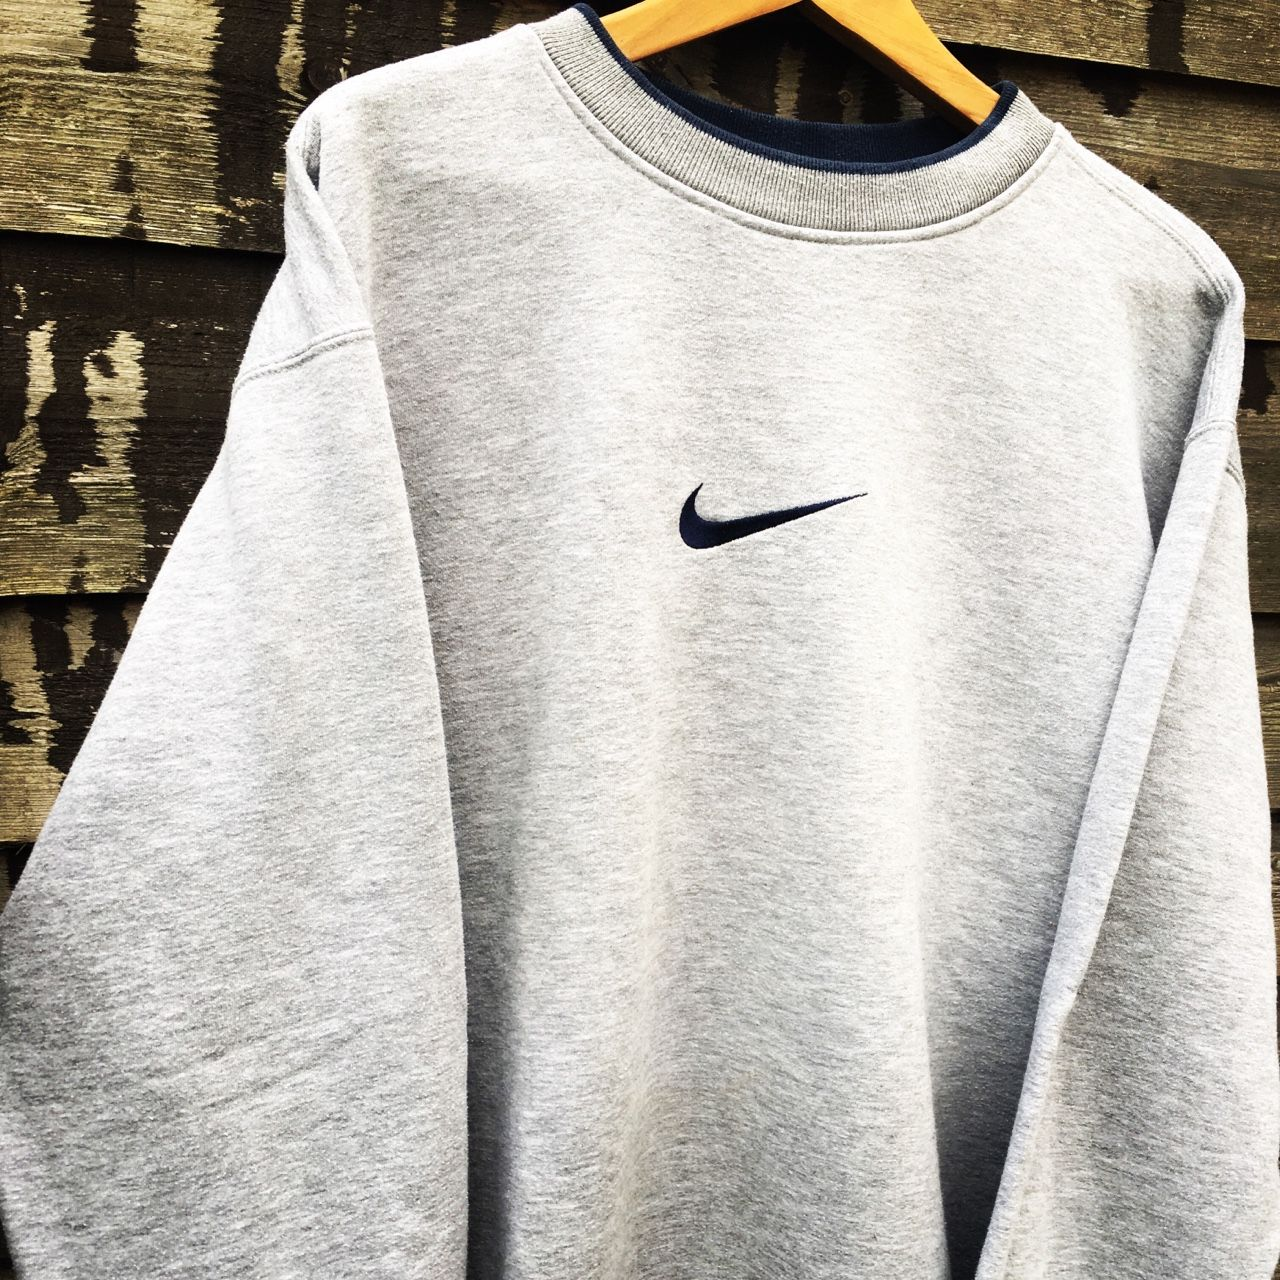 Retro Nike grey sweatshirt \\ size XL (fits L.